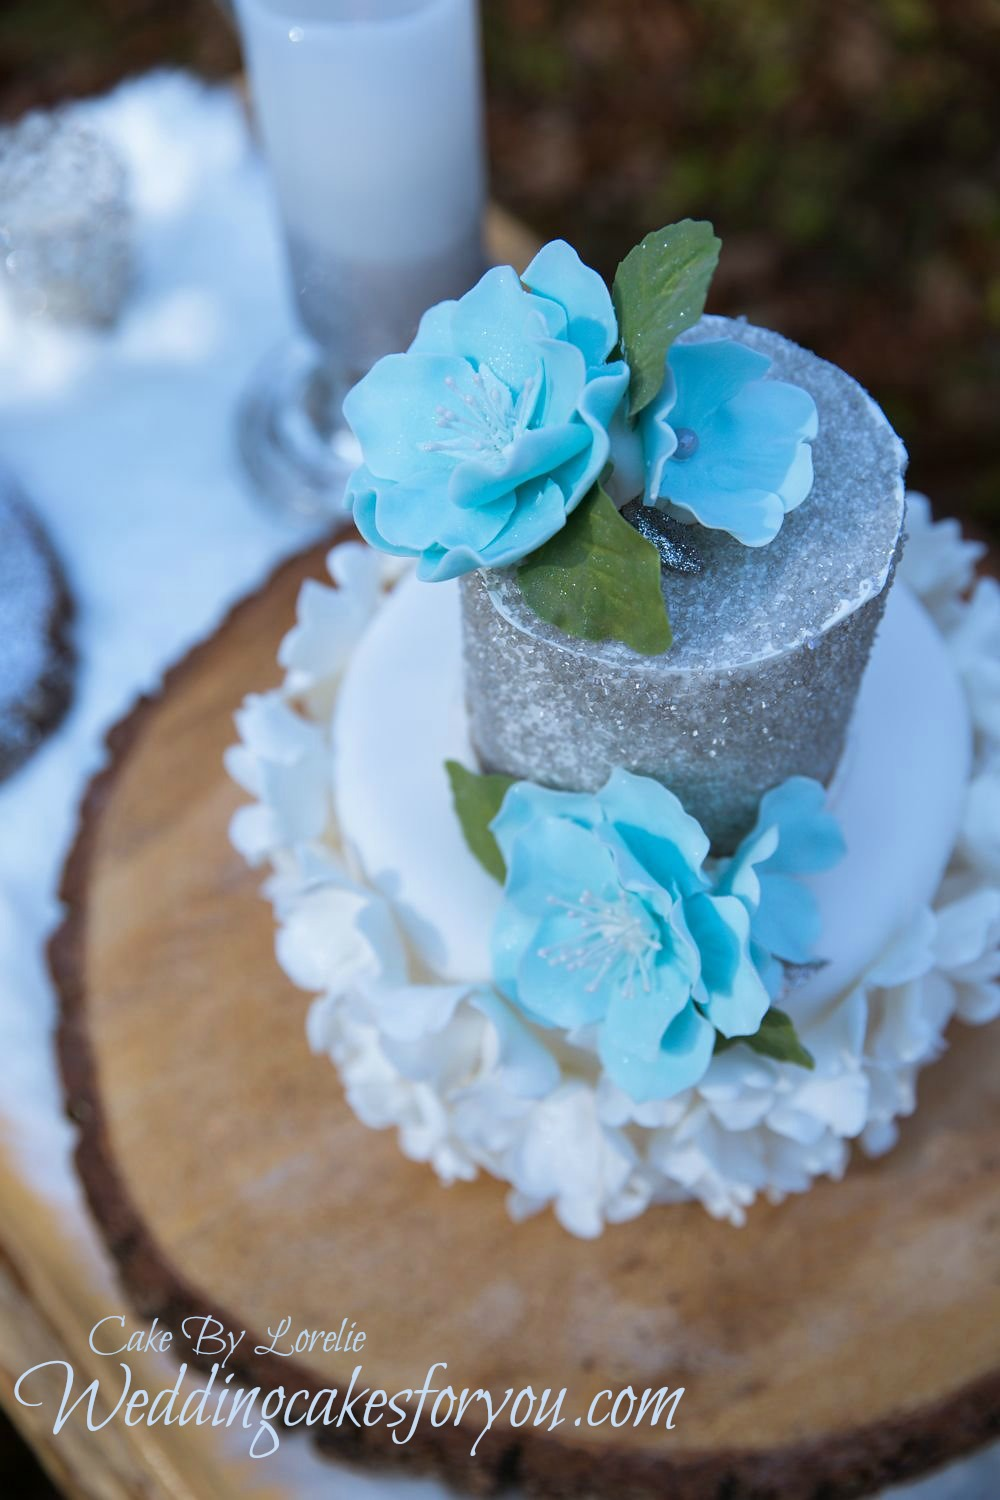 Elegant wedding cake on a rustic cake stand